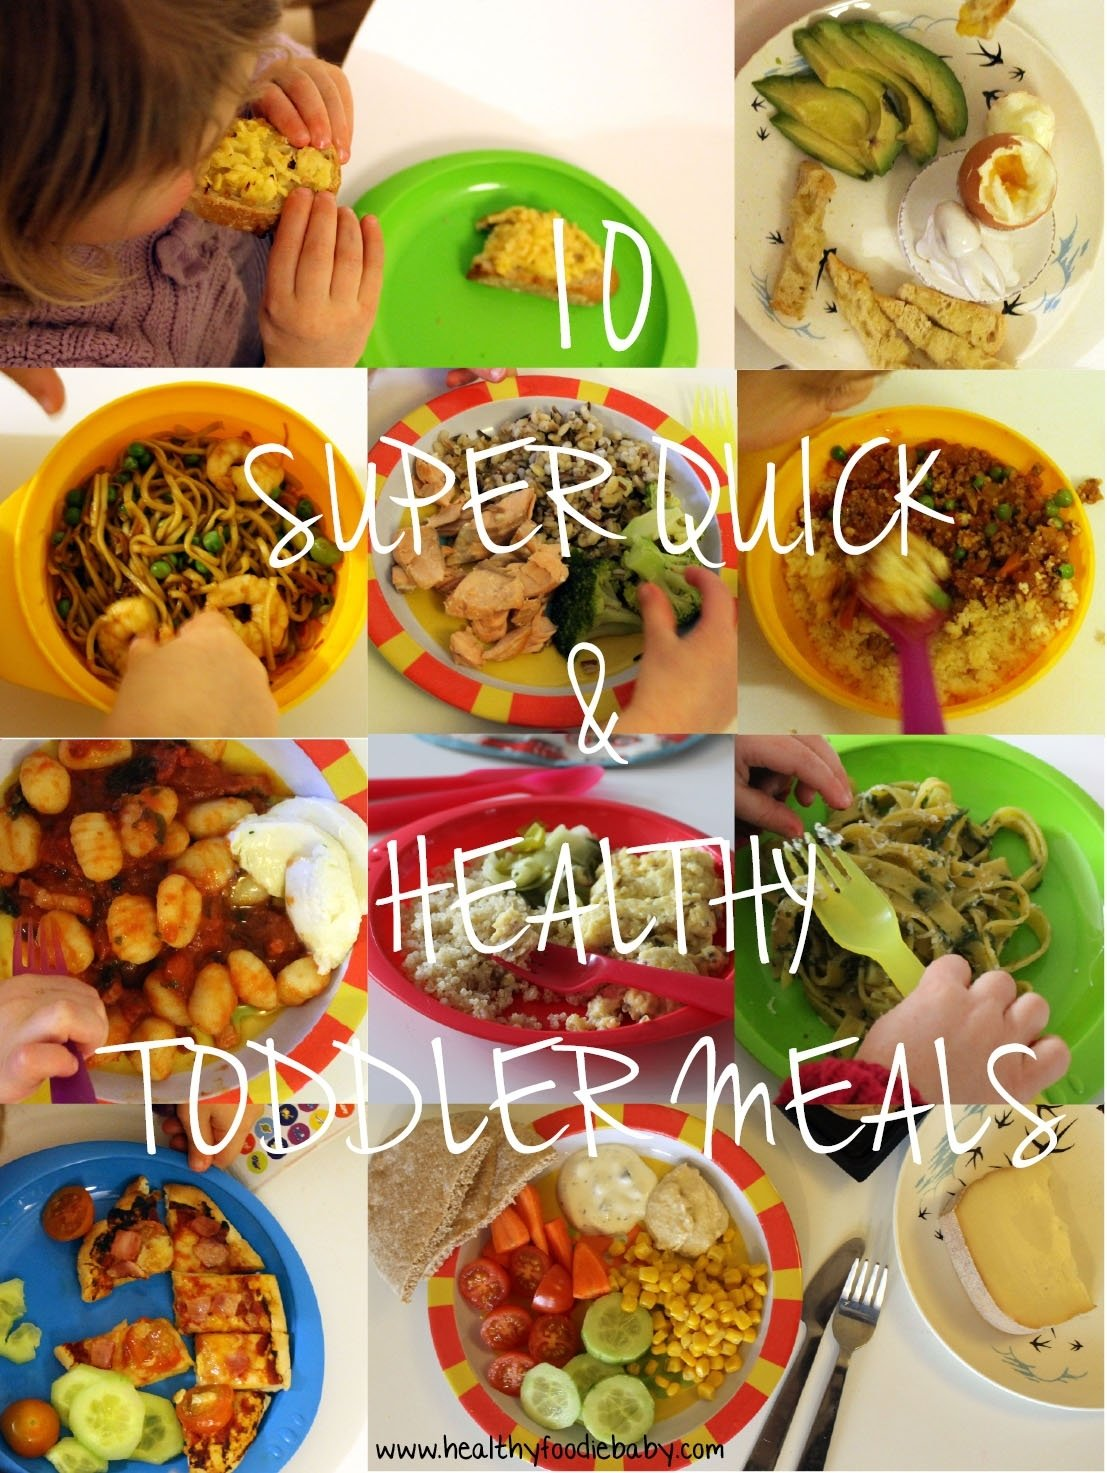 10 Stunning Healthy Meal Ideas For Toddlers 10 super quick healthy toddler meals healthyfoodiebaby 2 2021